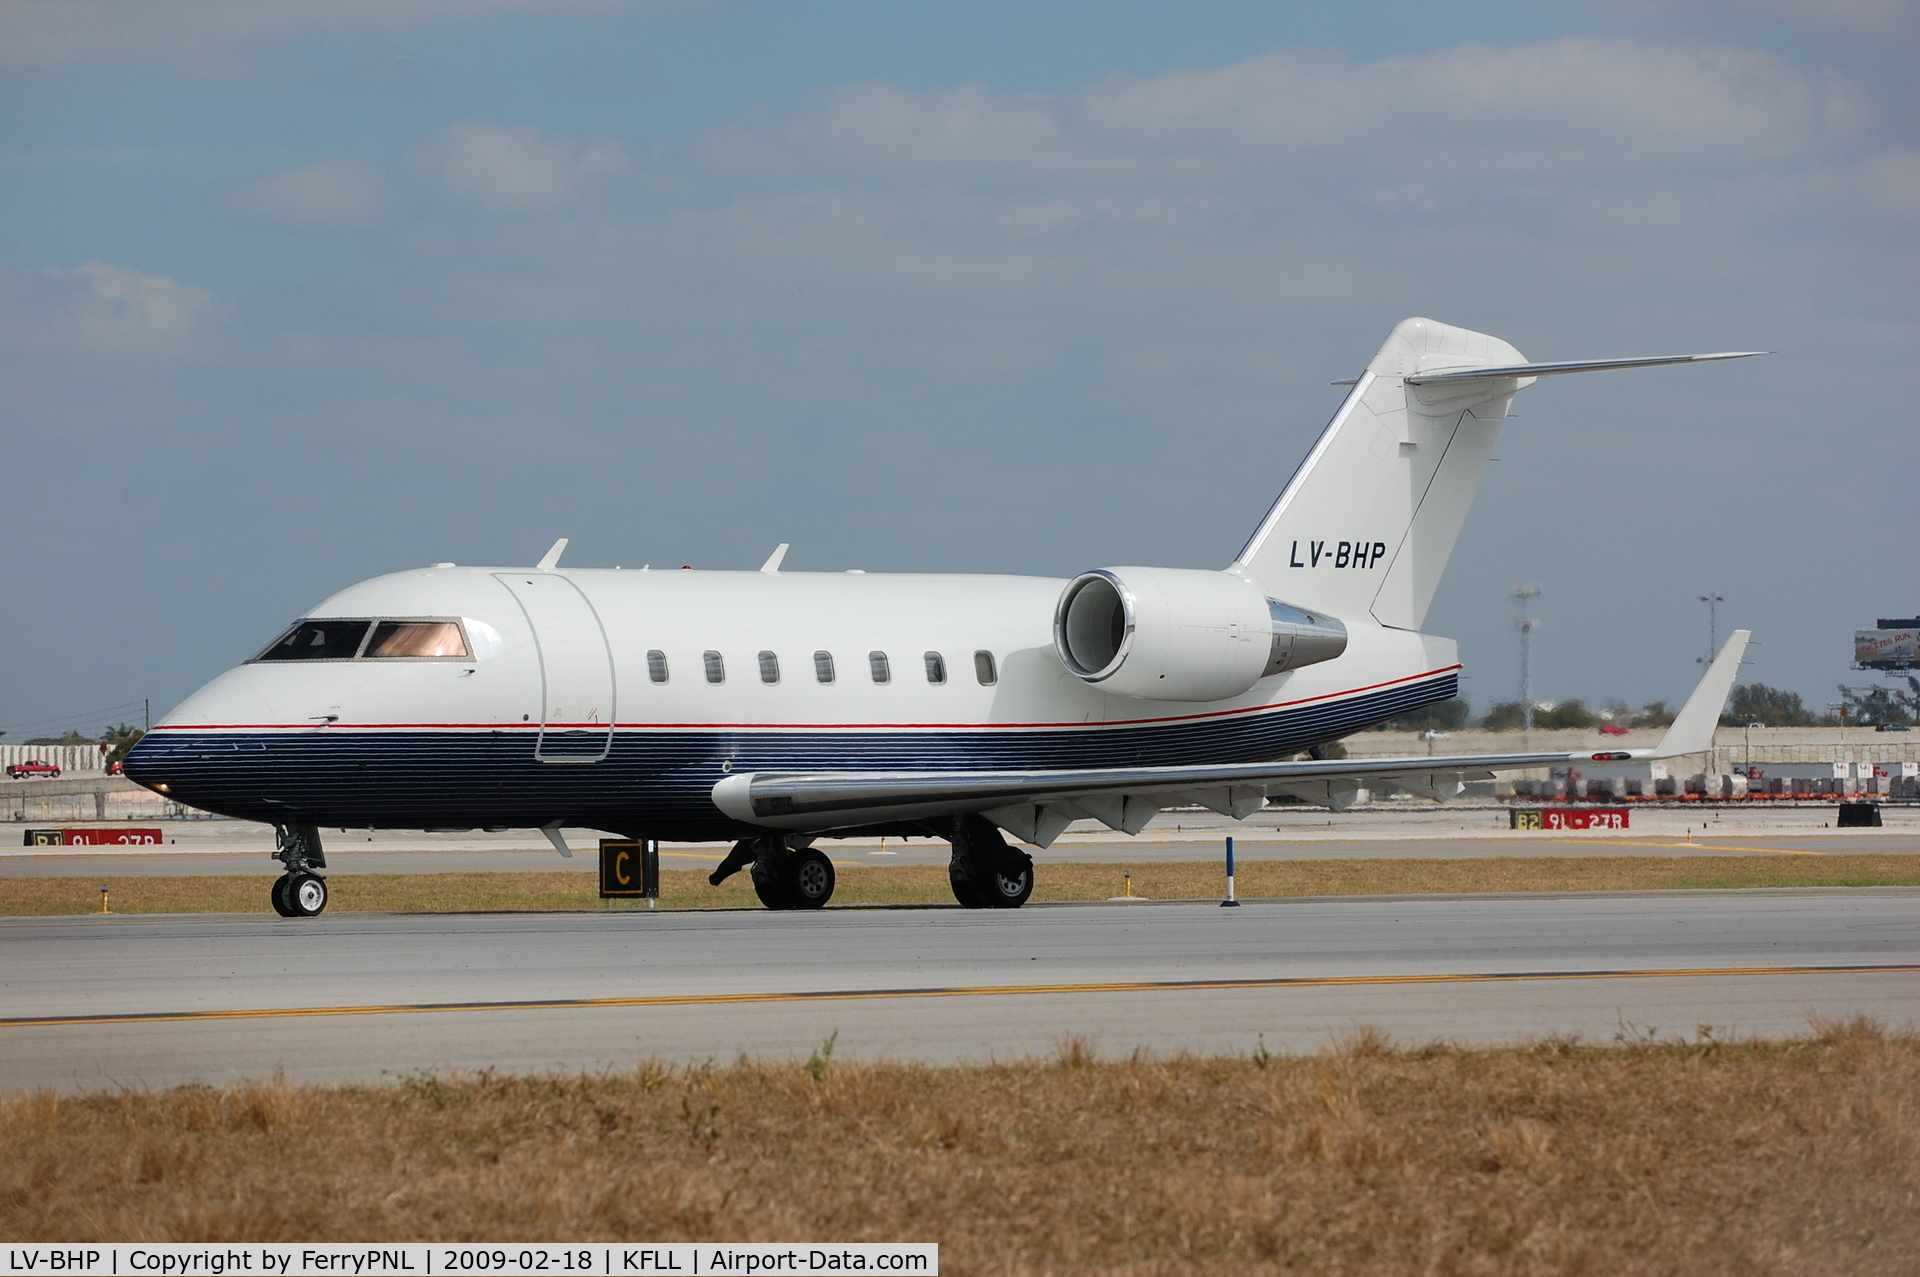 LV-BHP, 2001 Bombardier Challenger 604 (CL-600-2B16) C/N 5493, Challenger 604 from Argentina taxying for take-off from FLL.